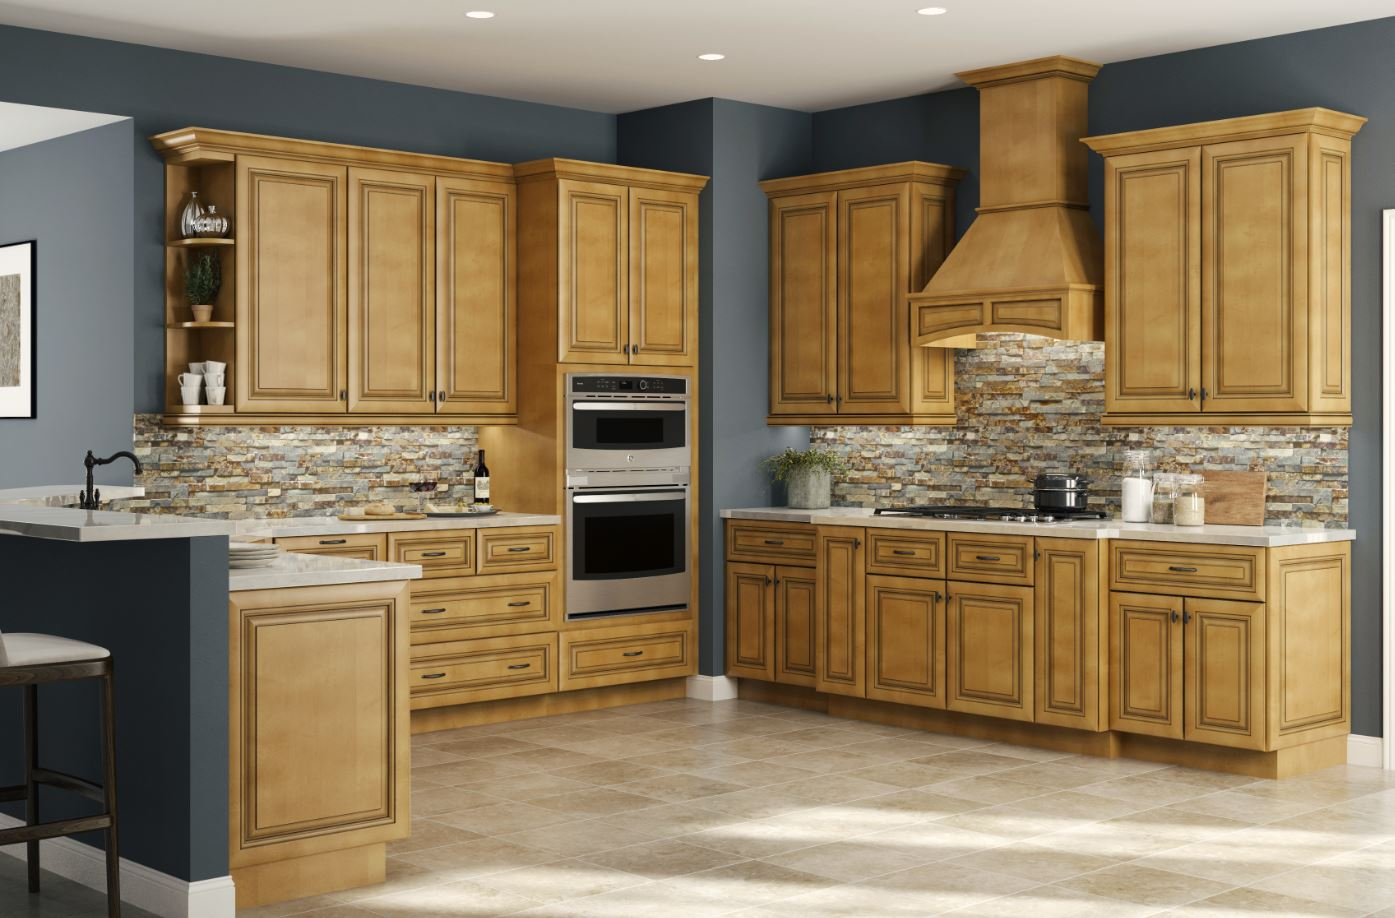 Glaze For Kitchen Cabinets Lewiston Base Cabinets In Toffee Glaze Kitchen The Home Depot